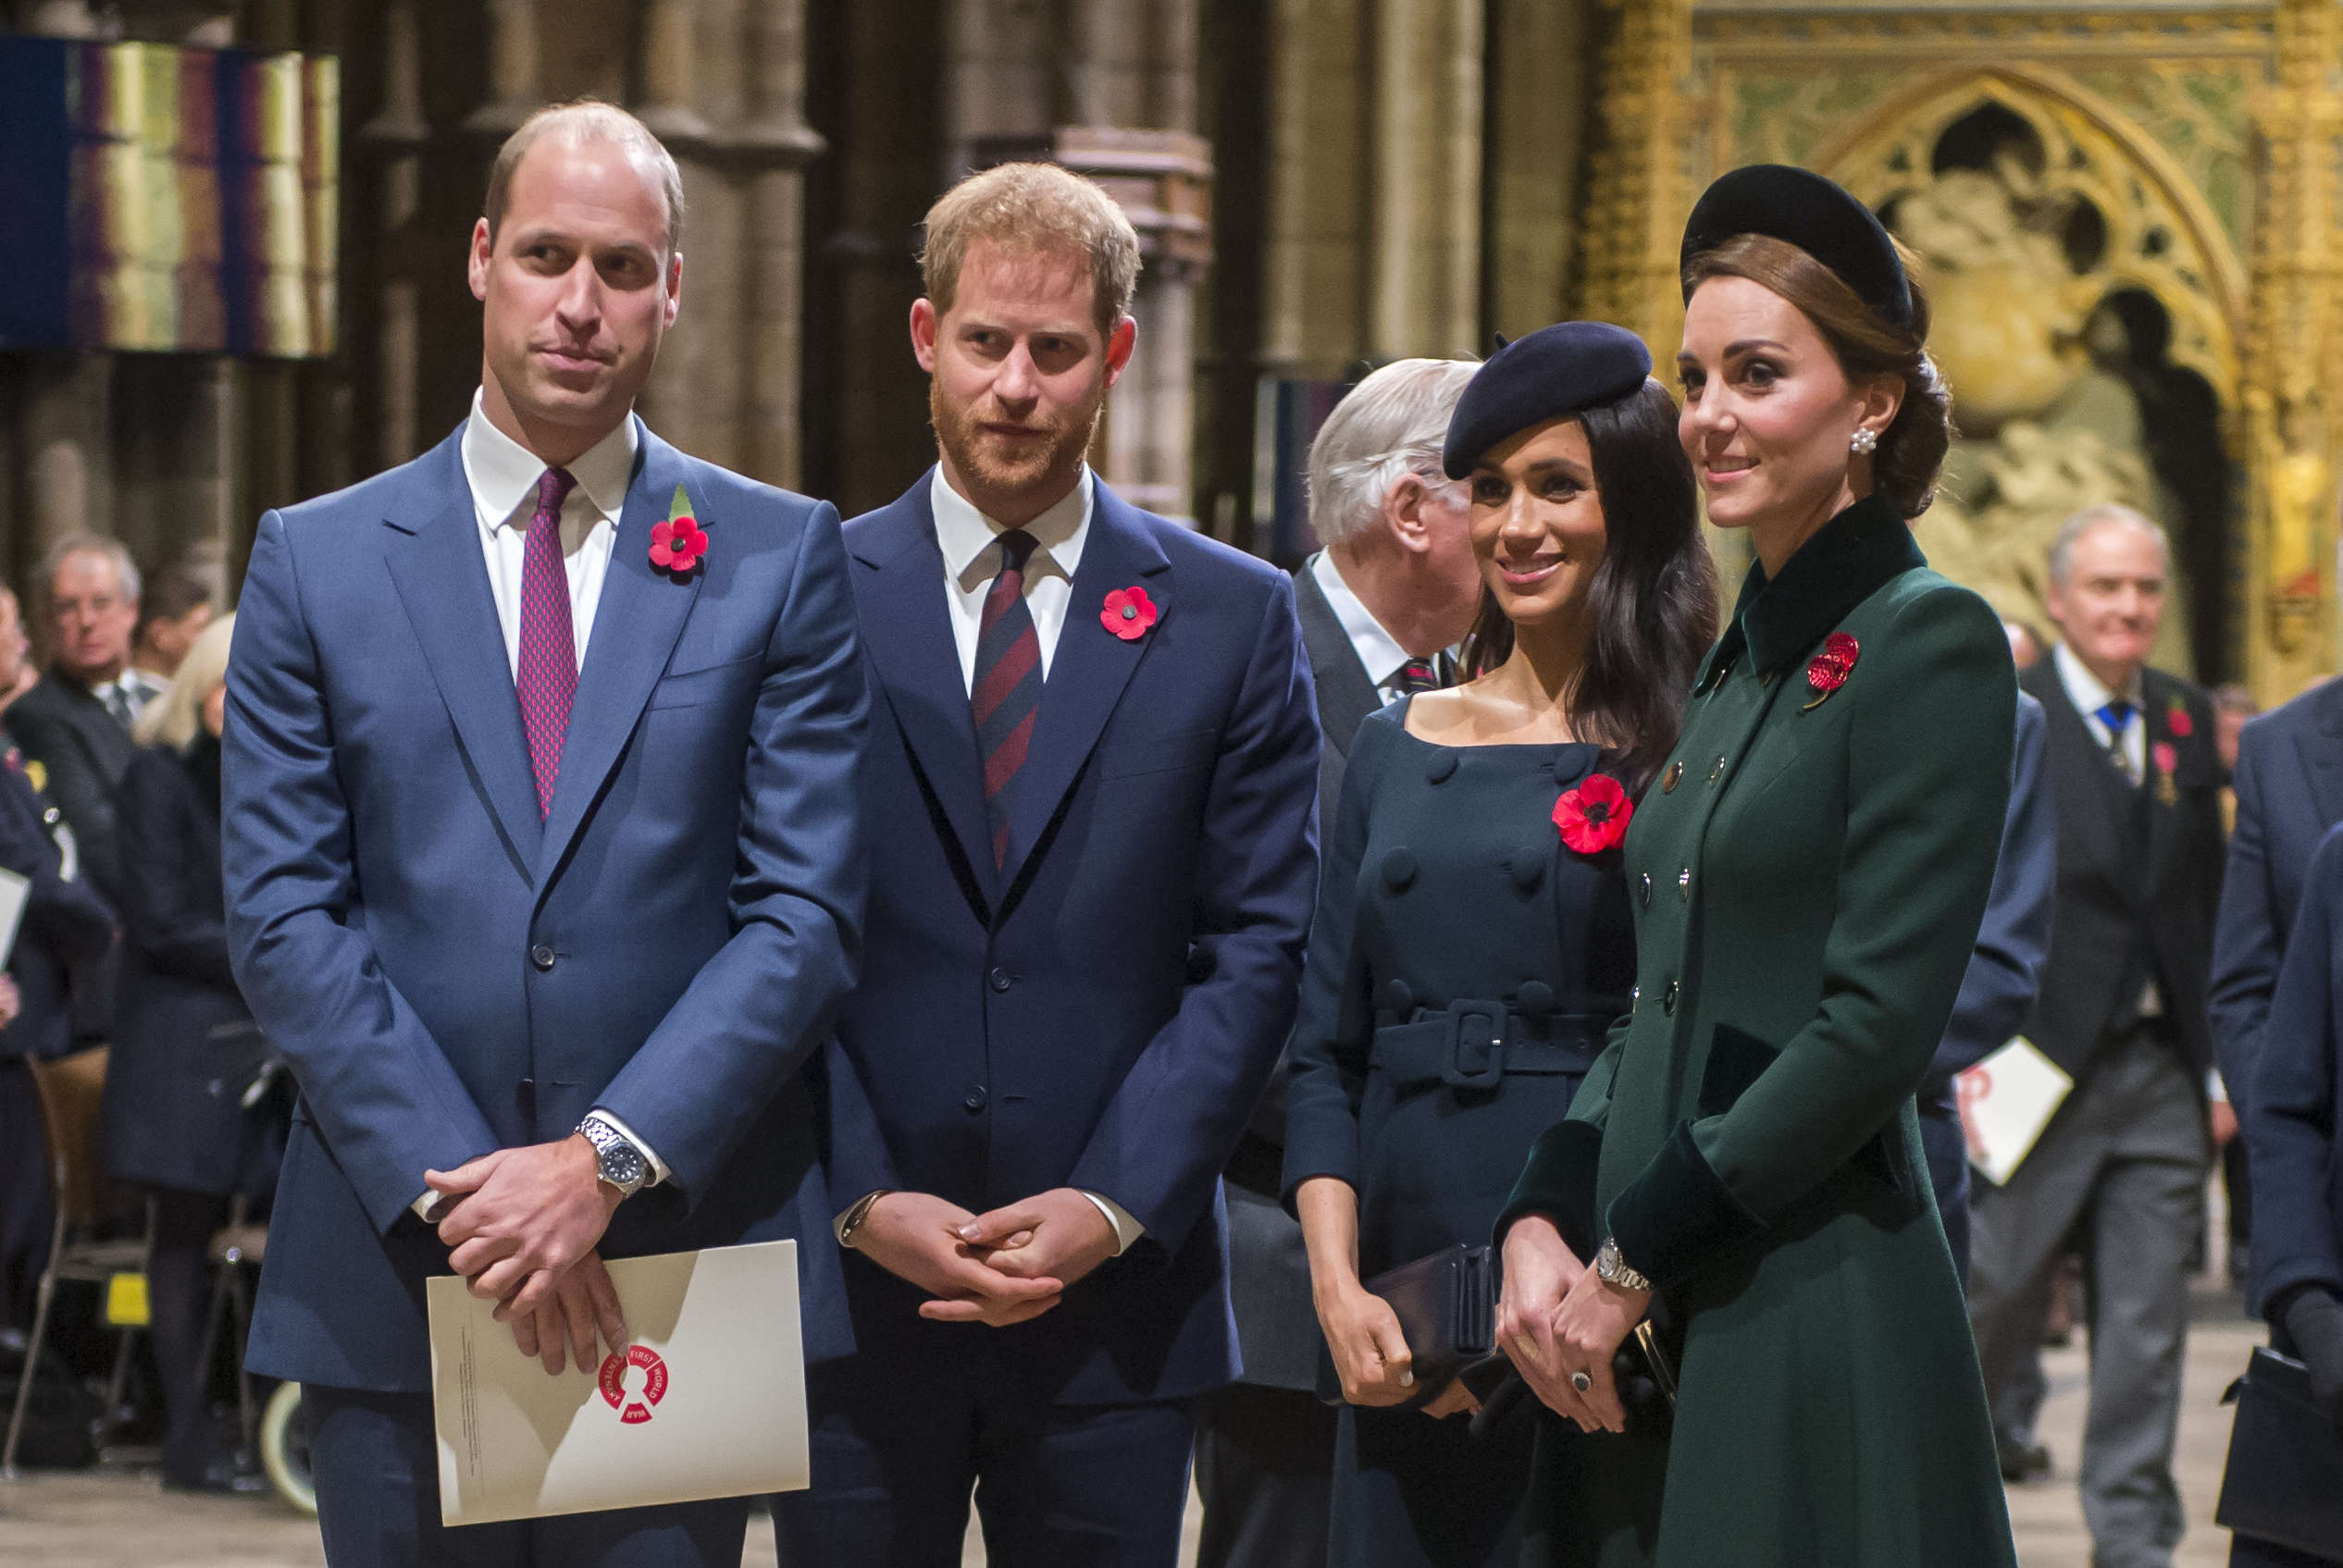 Prince William, Duke of Cambridge and Catherine, Duchess of Cambridge, Prince Harry, Duke of Sussex and Meghan, Duchess of Sussex 2018